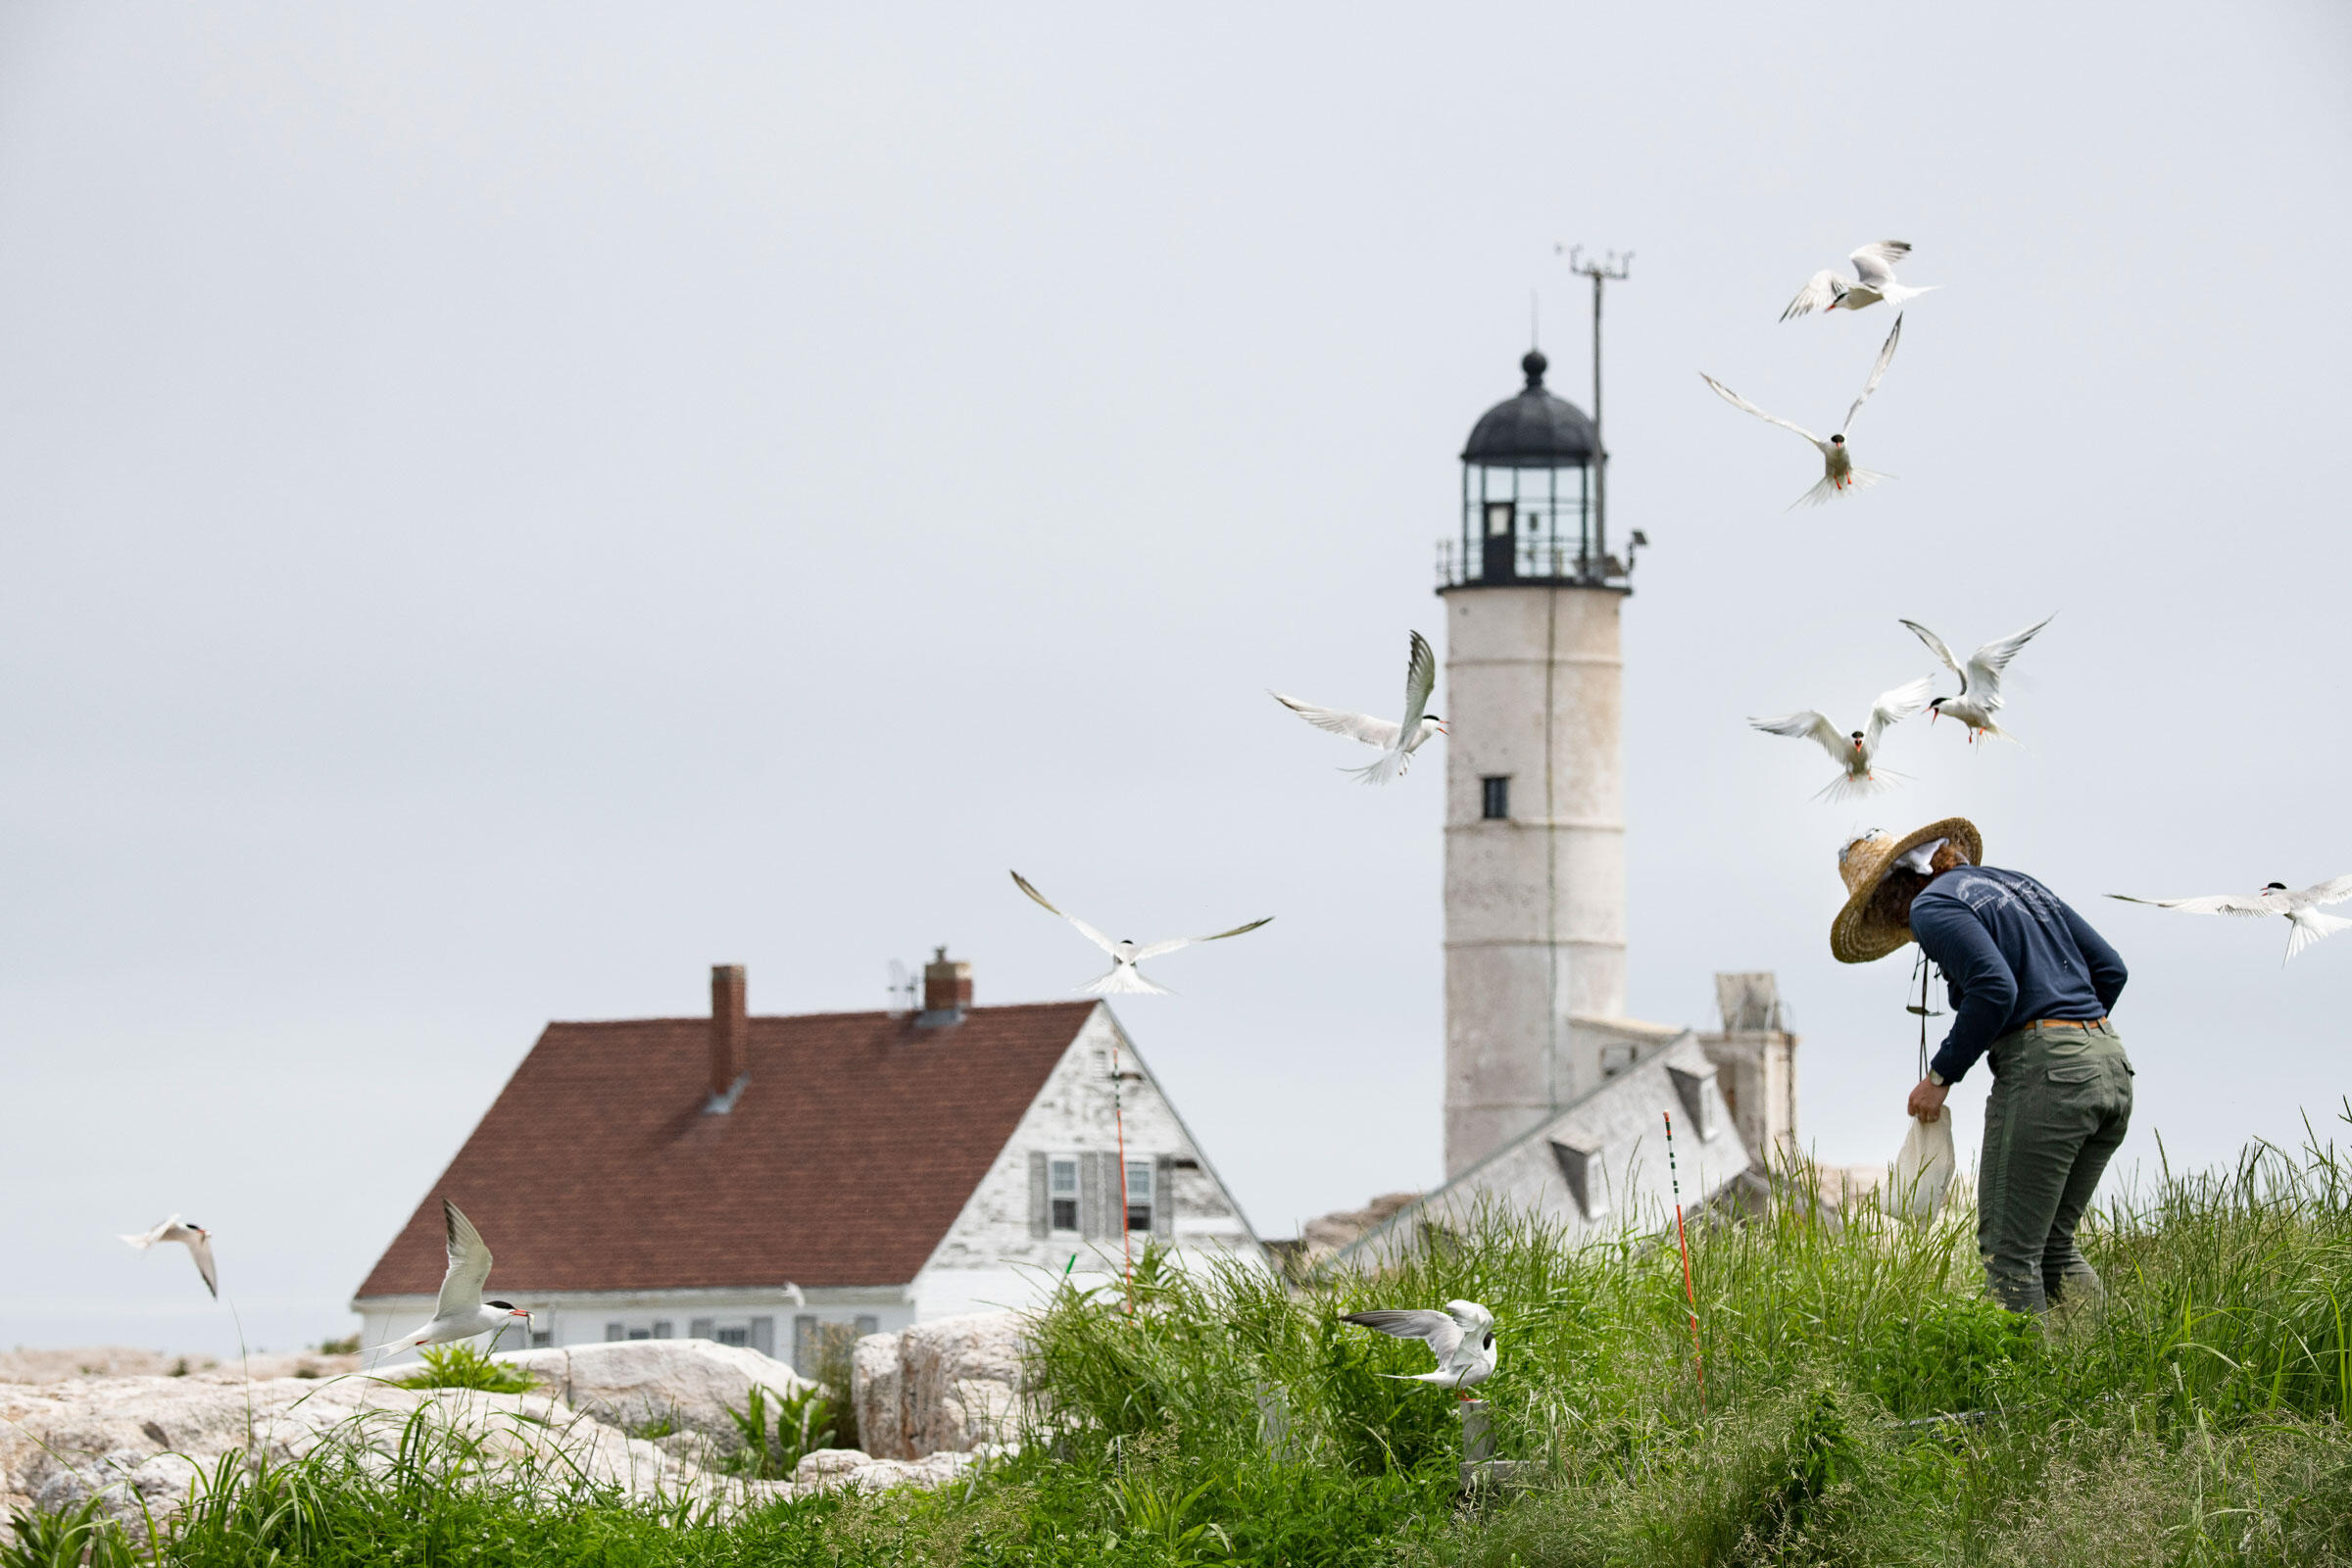 Amber Litterer, a seabird technician with Shoals Marine Laboratory, collects tern chicks to band on Seavey Island. Chris Linder